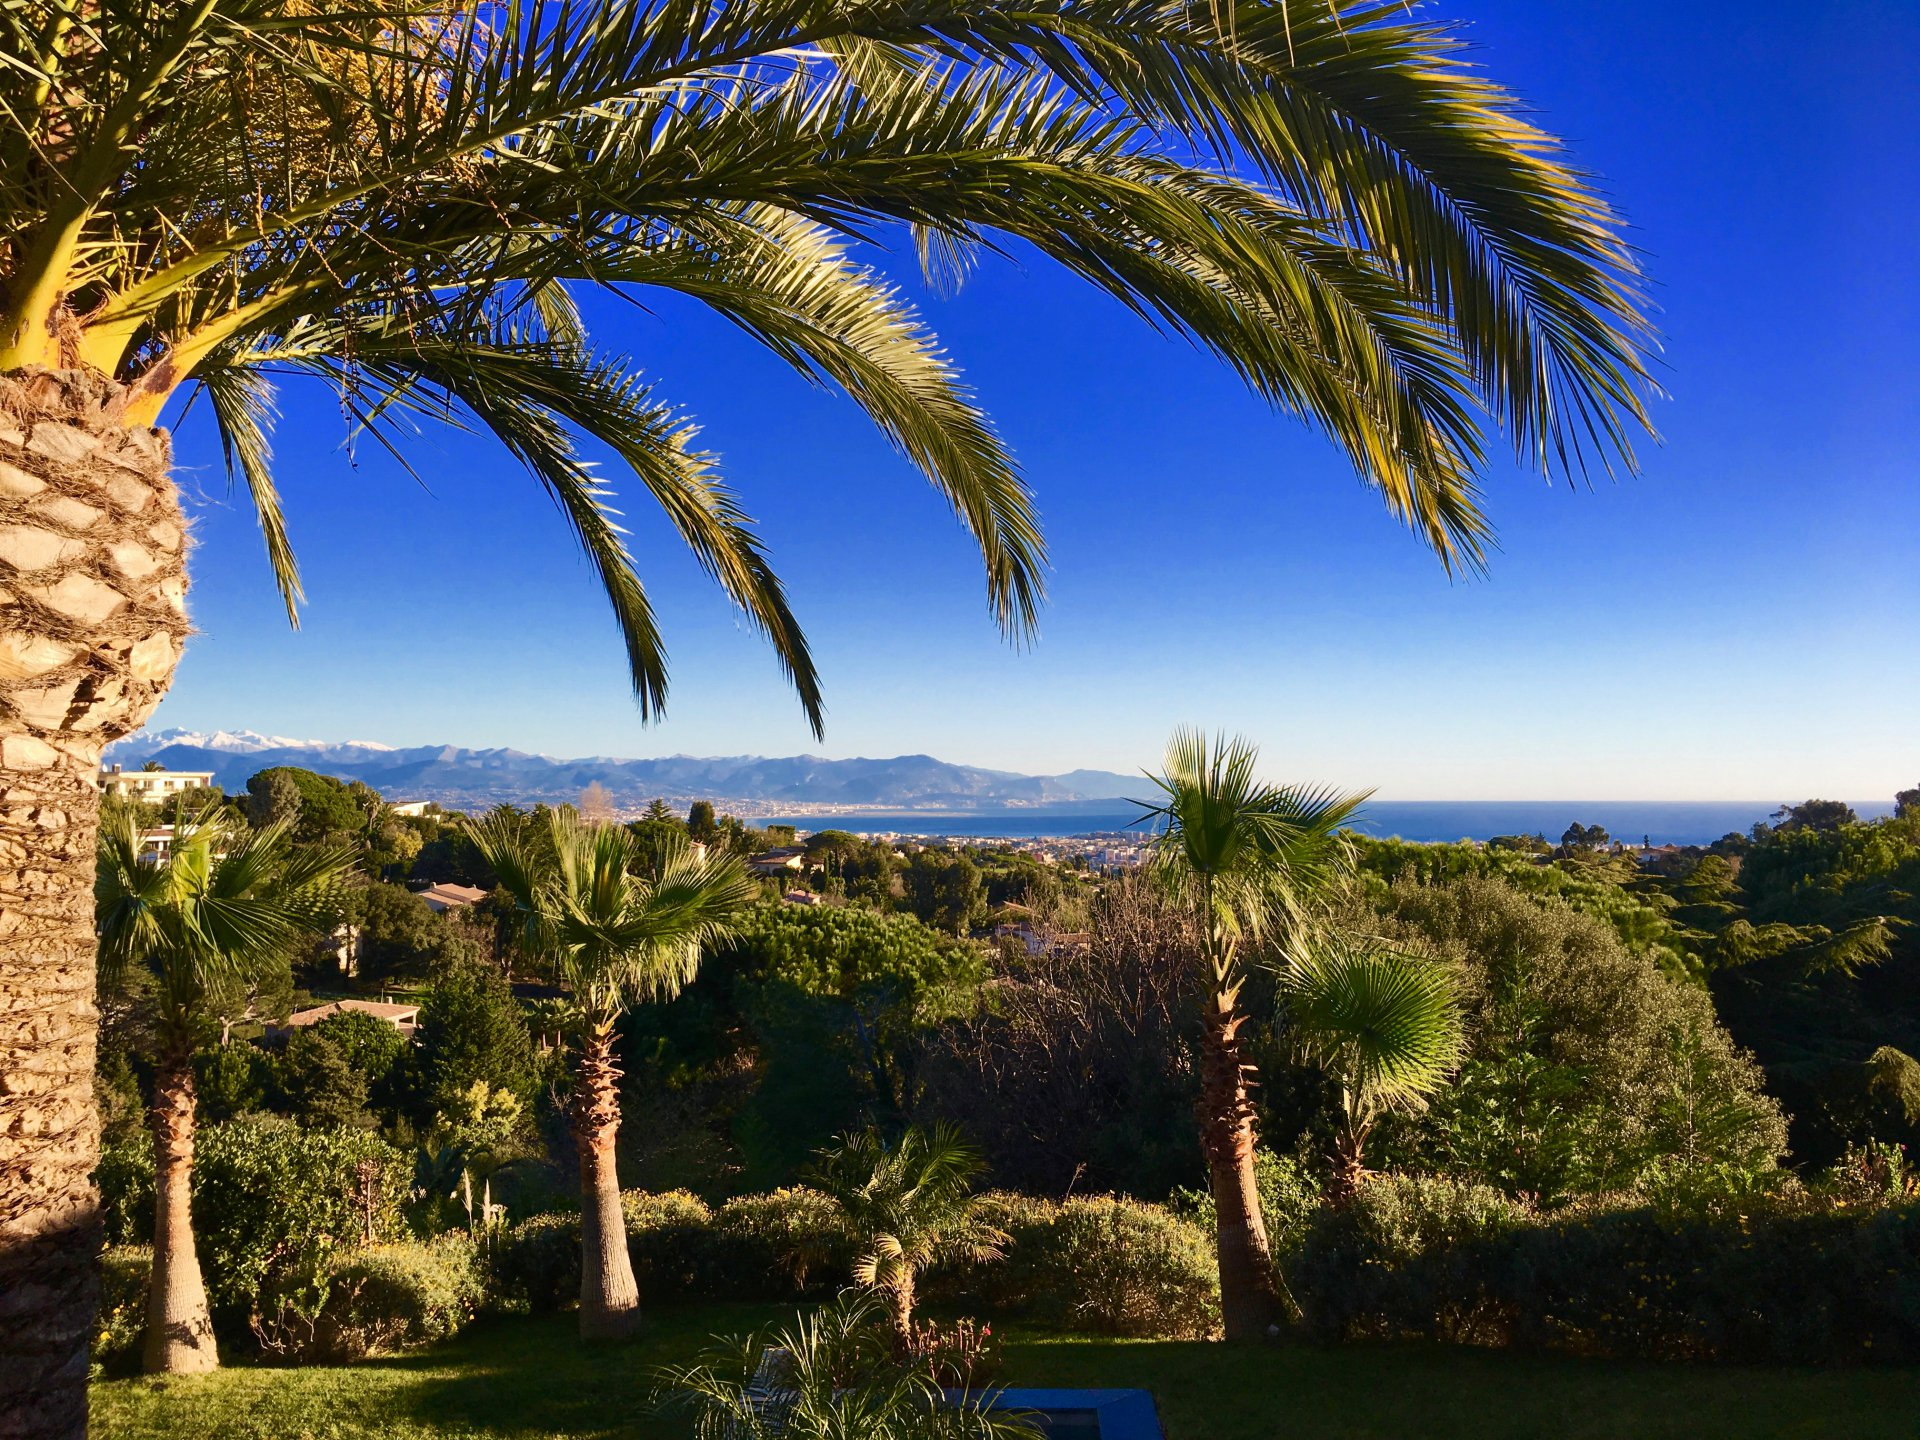 CALIFORNIE - PALM TREES, SEA AND SNOW-CAPPED MOUNTAINS